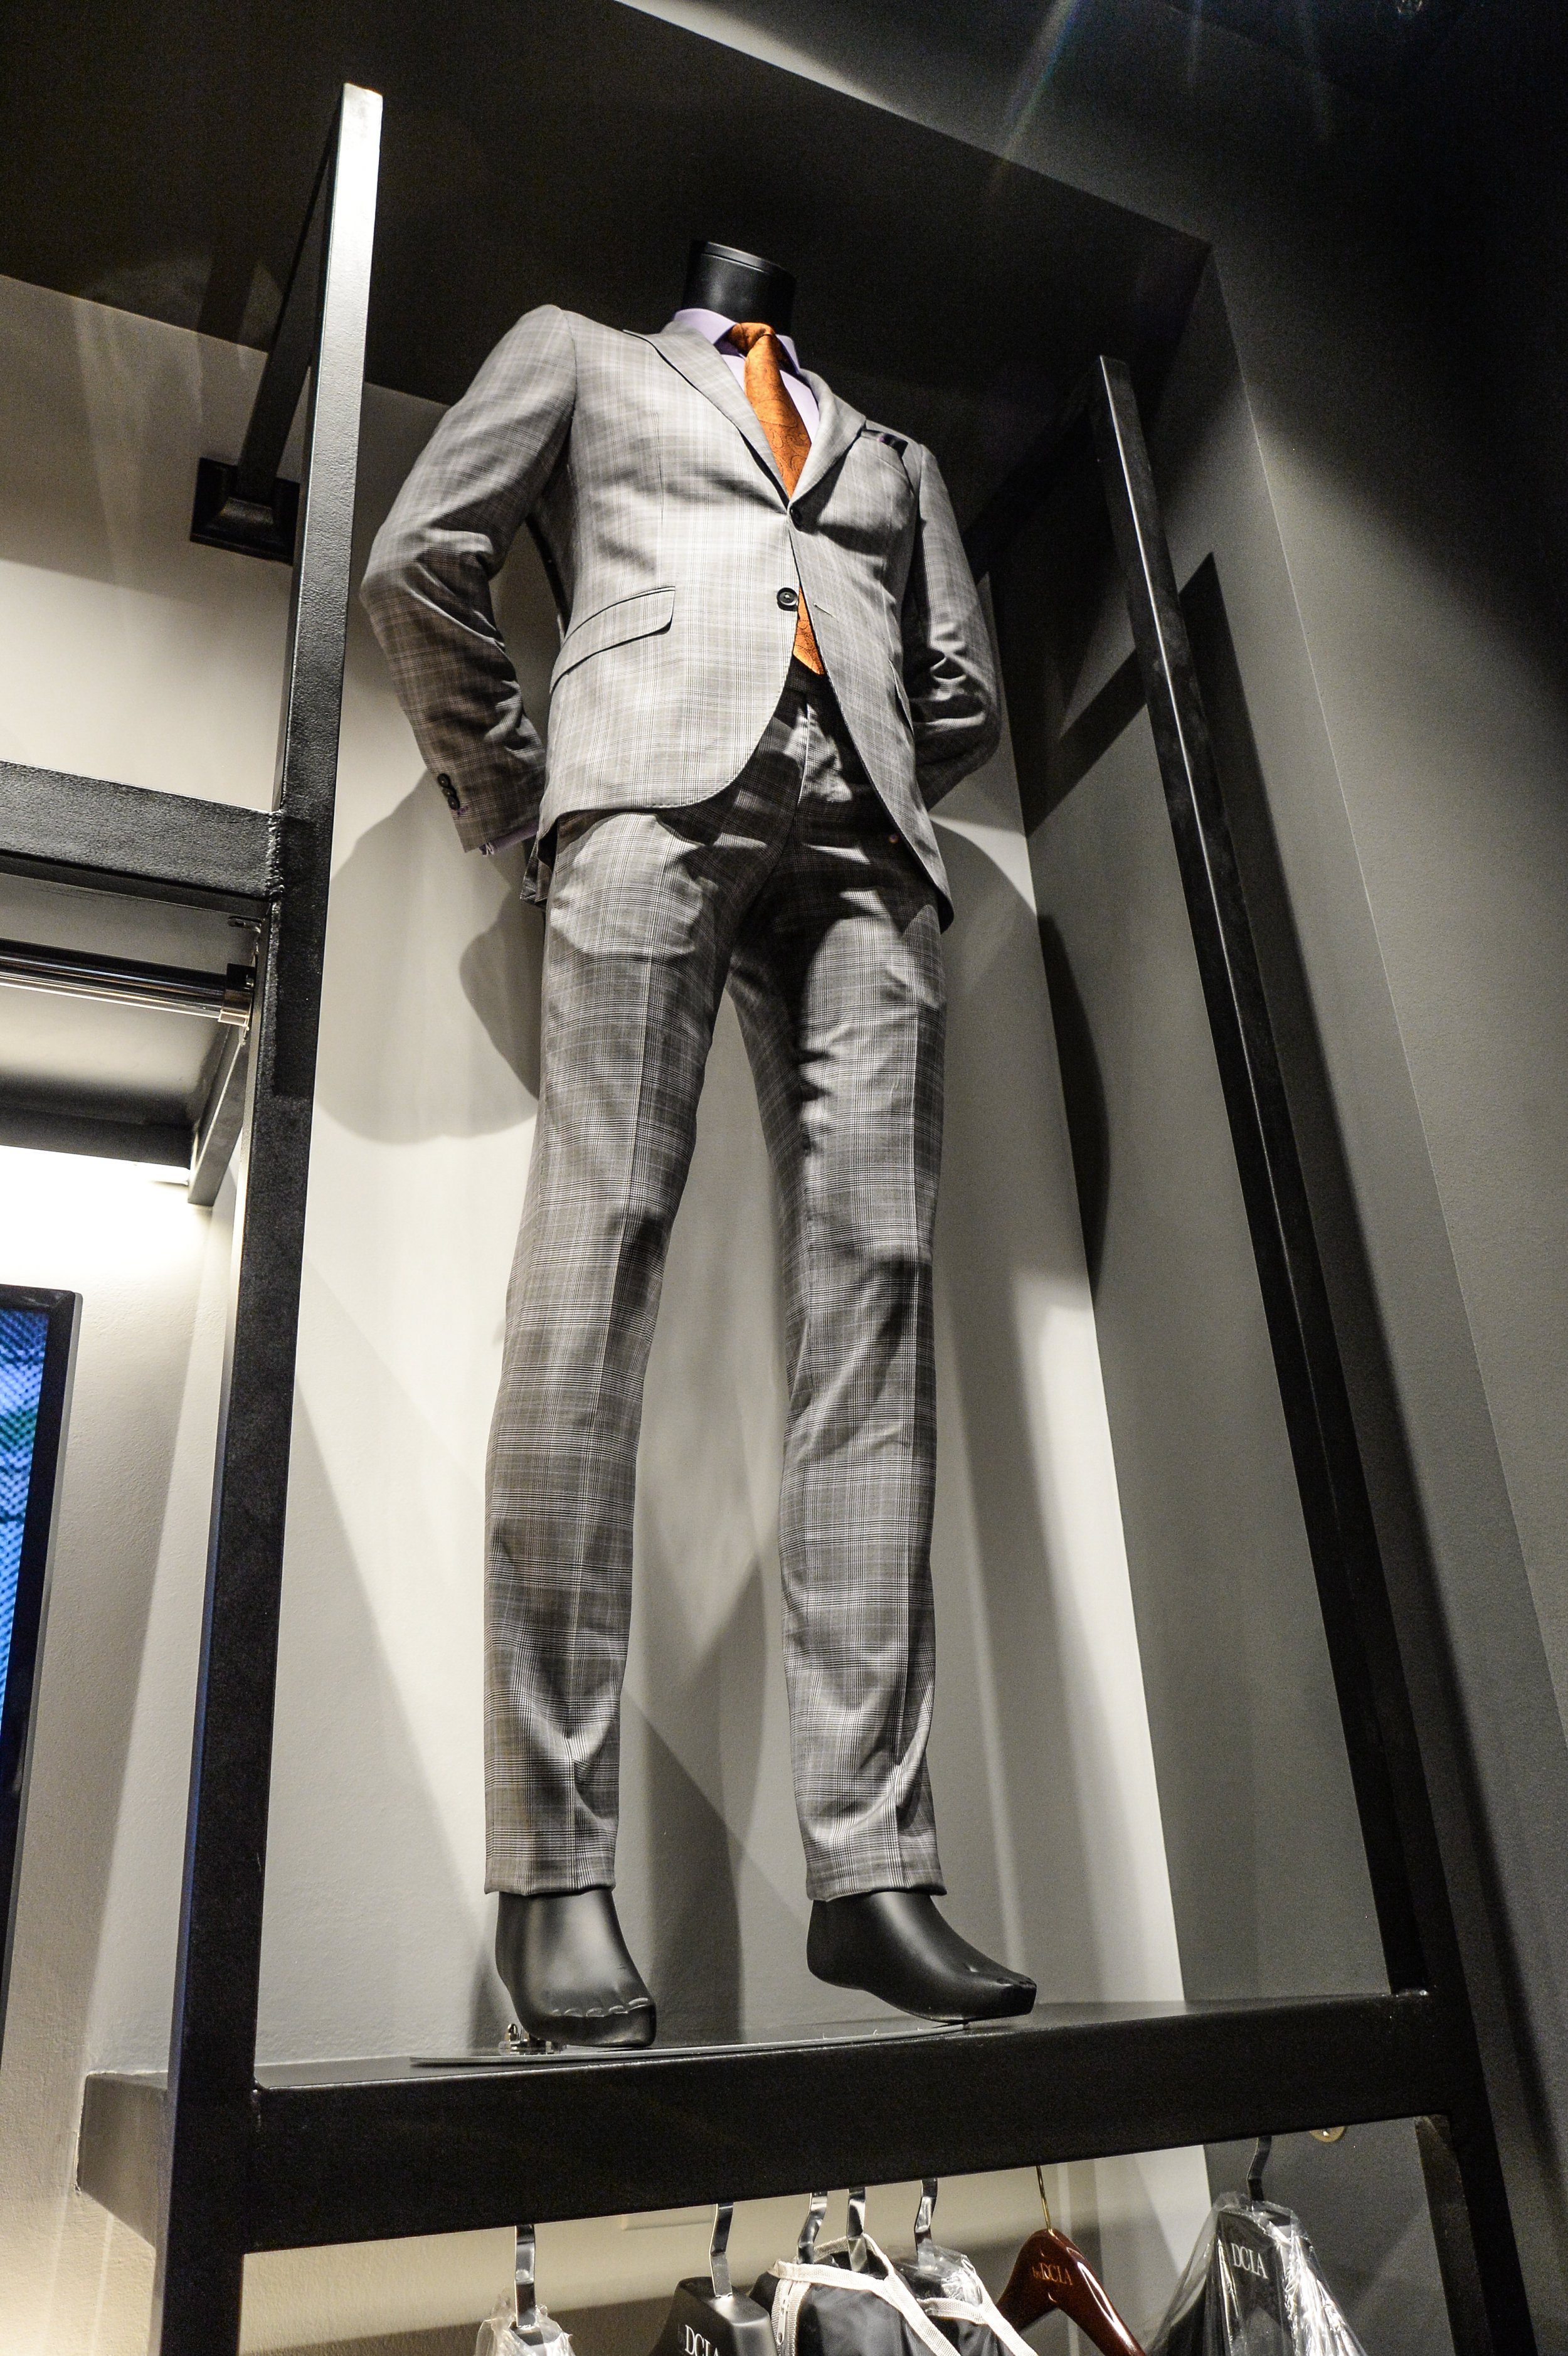 Suit by DCLA - Fabric by Guabello